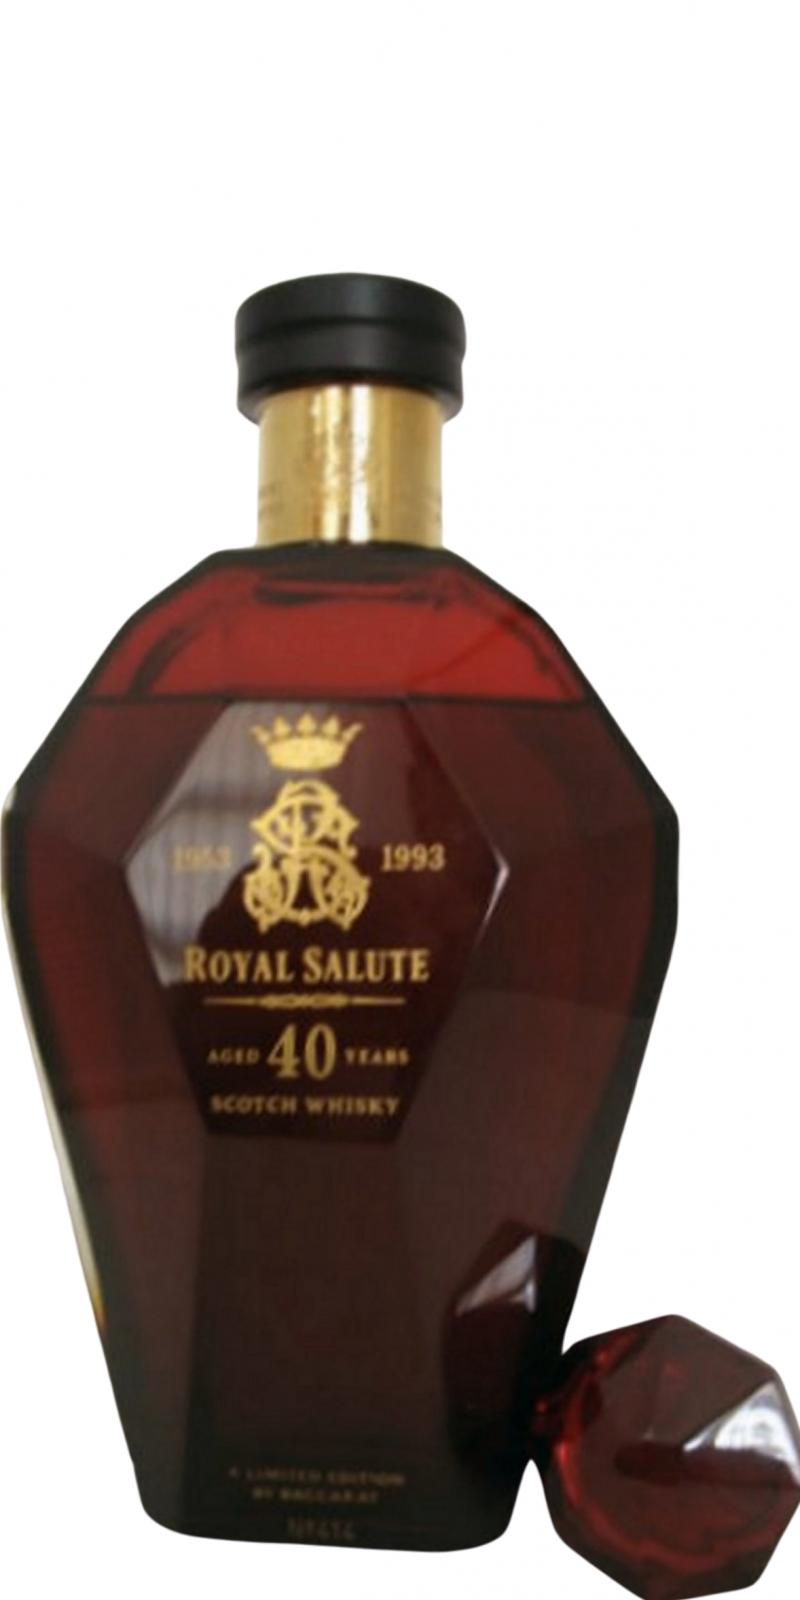 Royal Salute 40-year-old